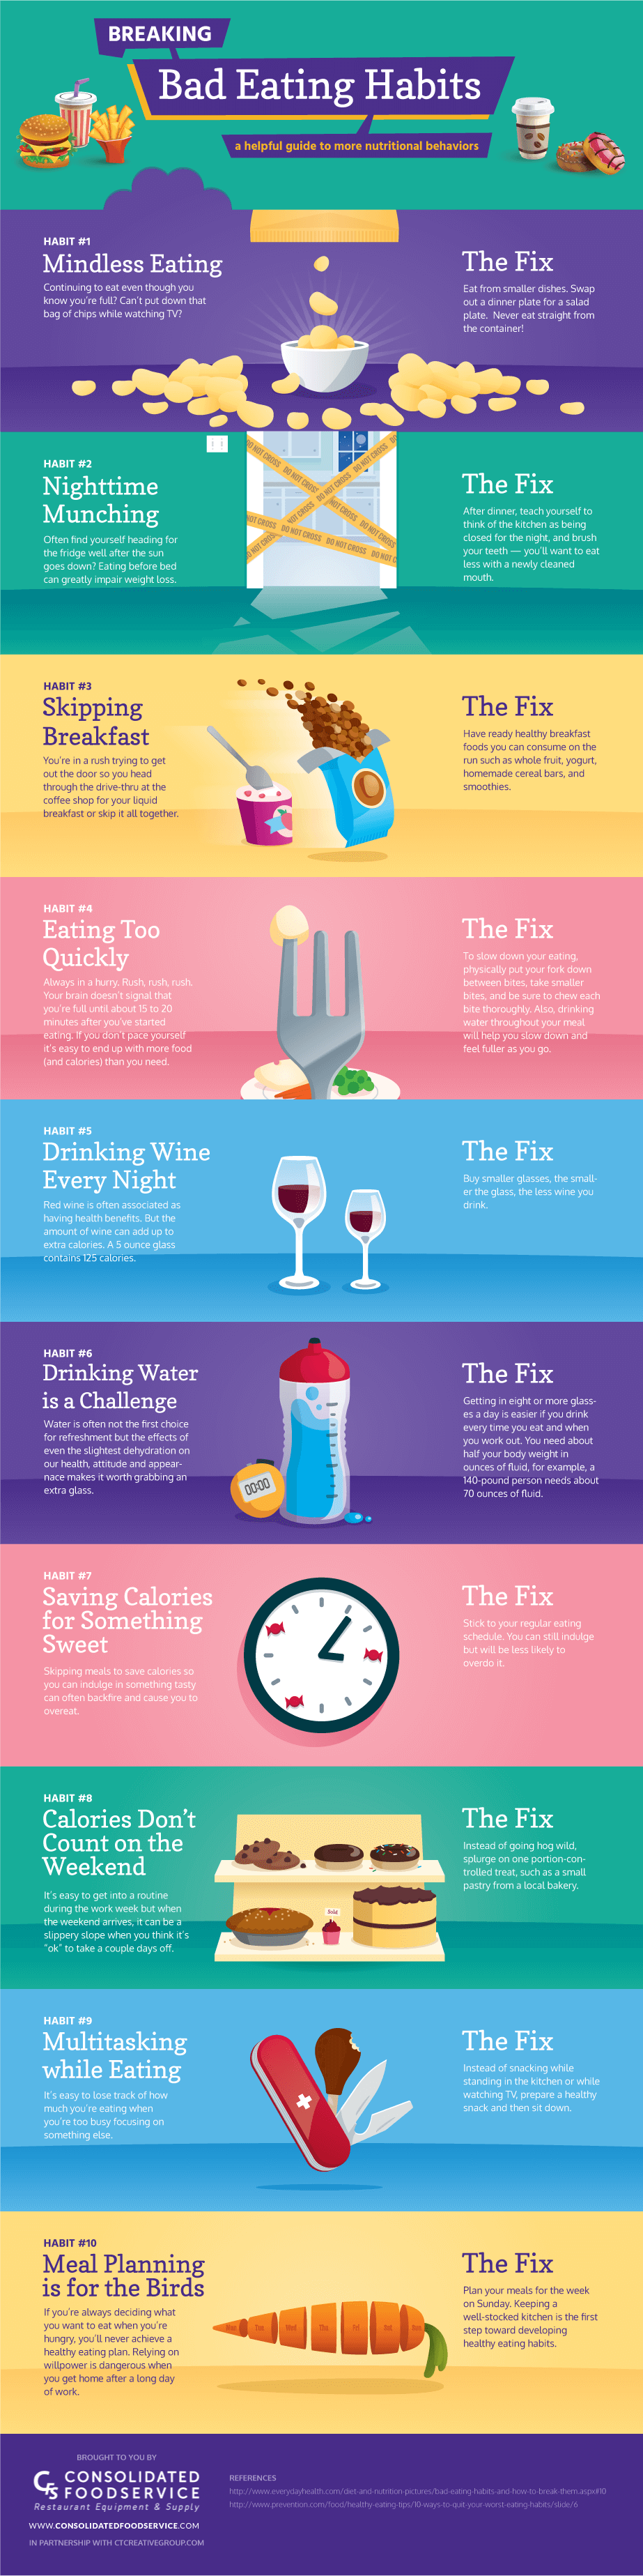 Breaking Bad Eating Habits Infographic